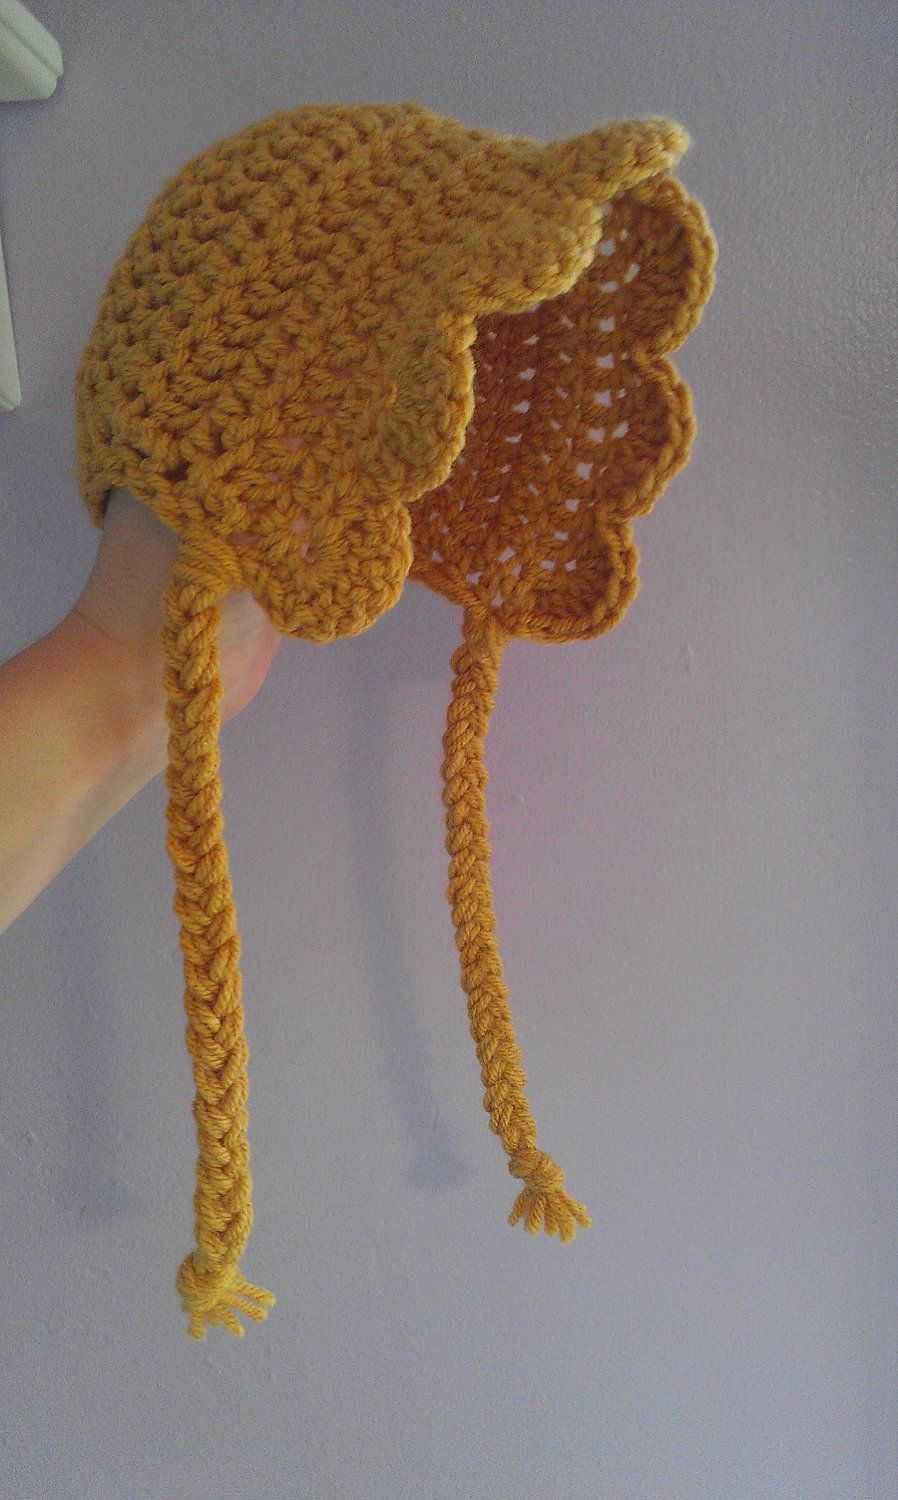 Crochet Baby Bonnet with Scalloped Edge and Braided Tails | crochet ...